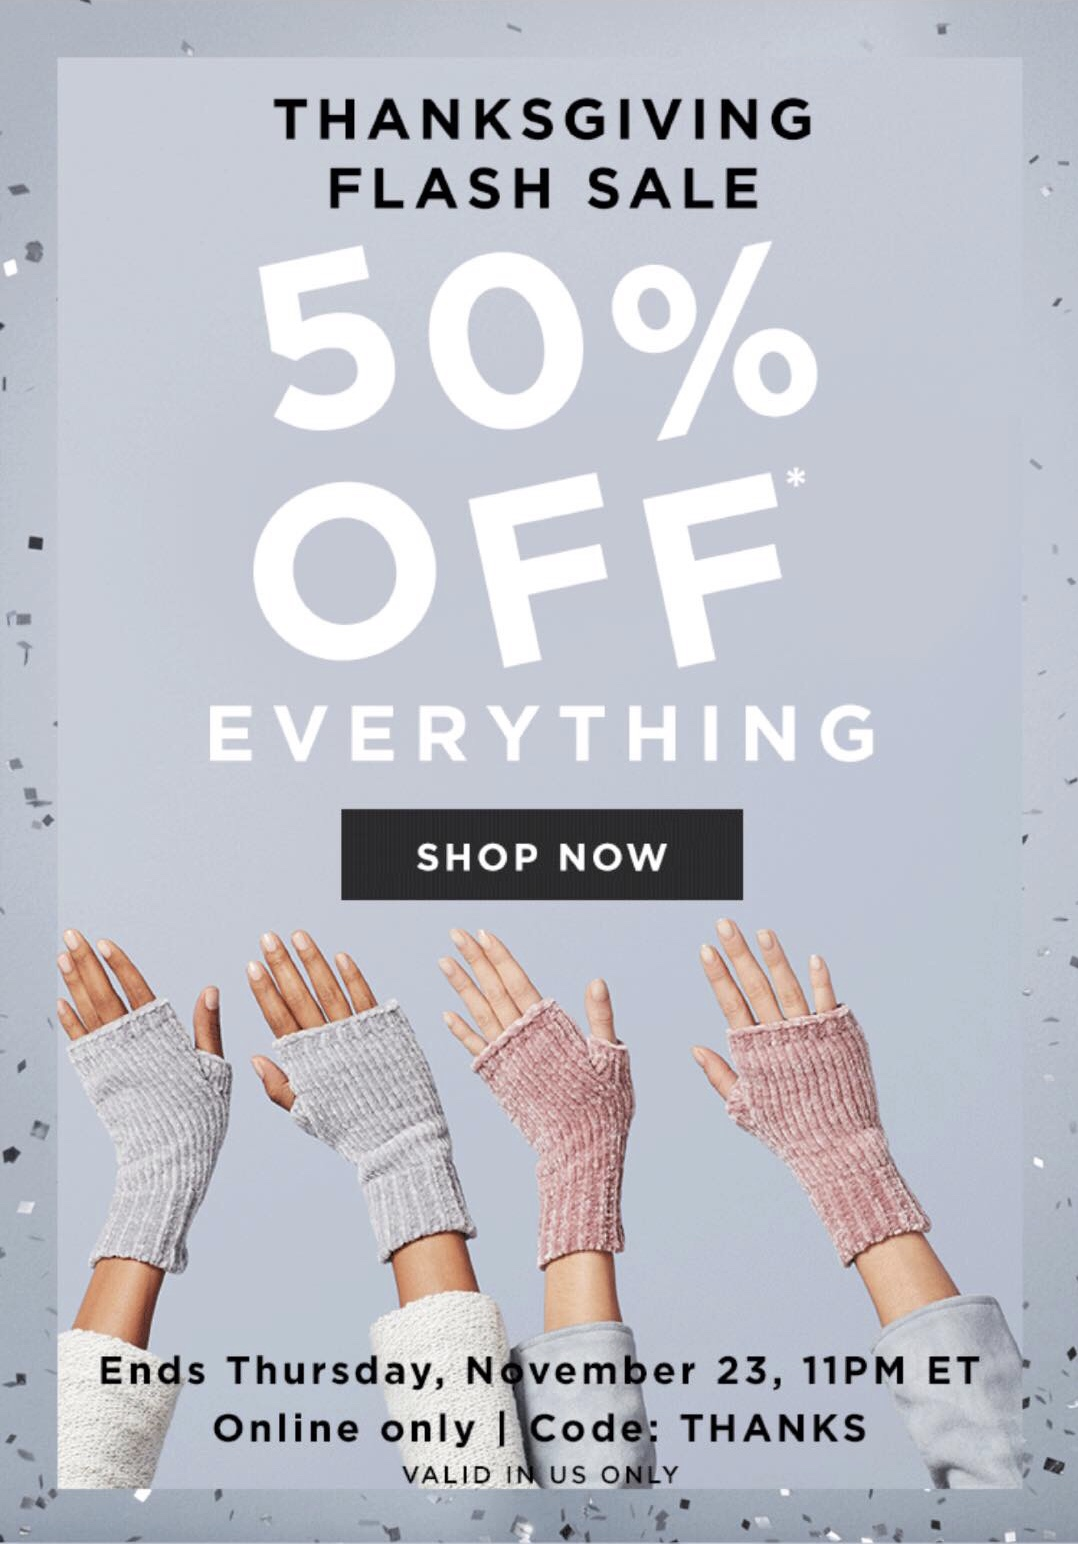 Get 50% off everything at LOFT. Use code THANKS. Valid online only. Sale ends 11/23 at 11PM ET.